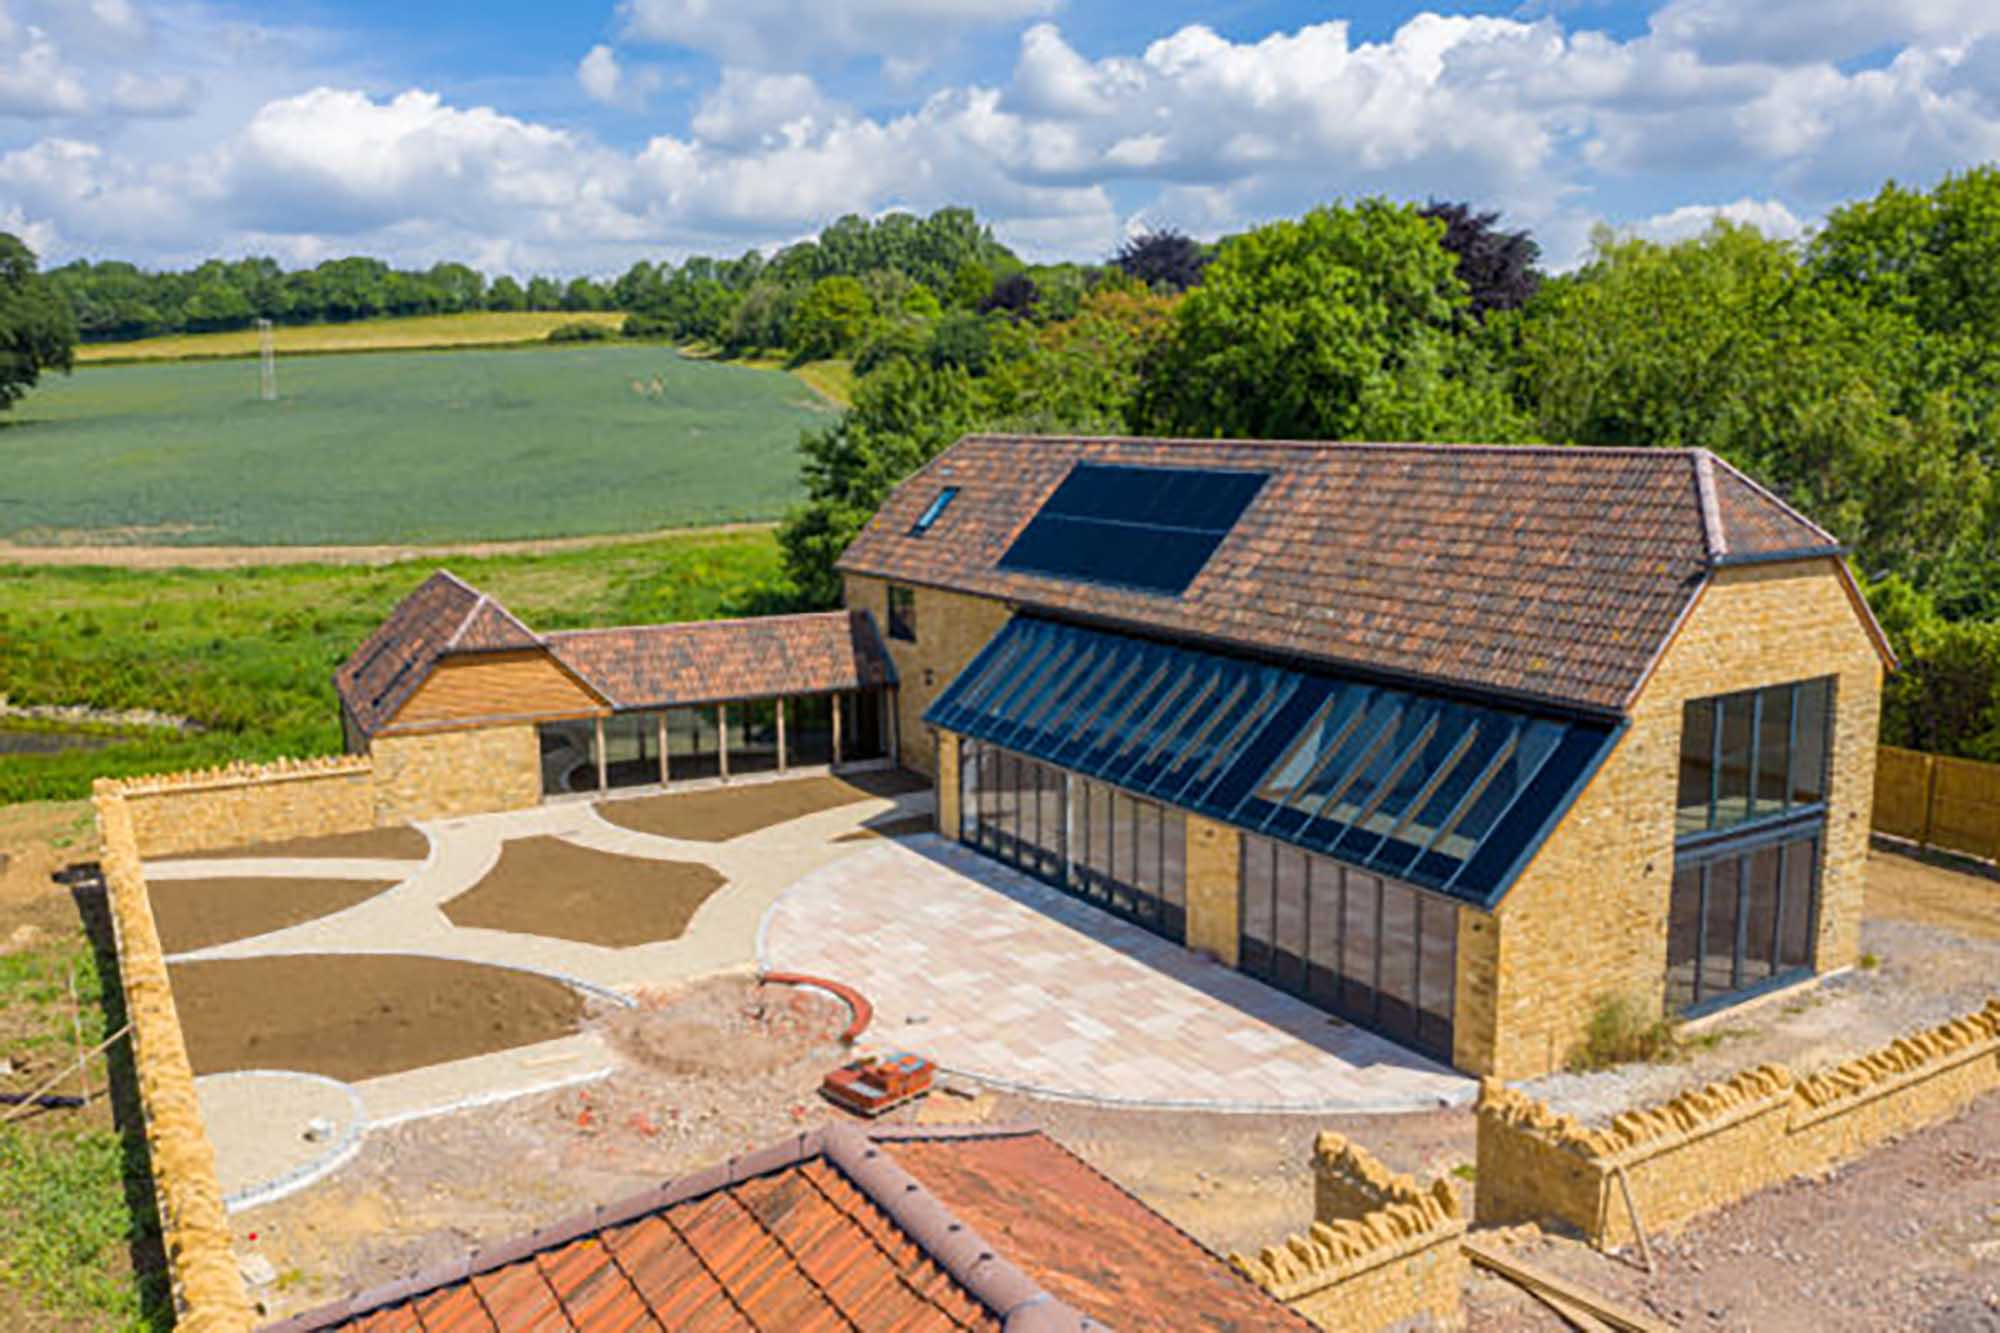 Oustanding Period Barn Conversion In rural Somerset